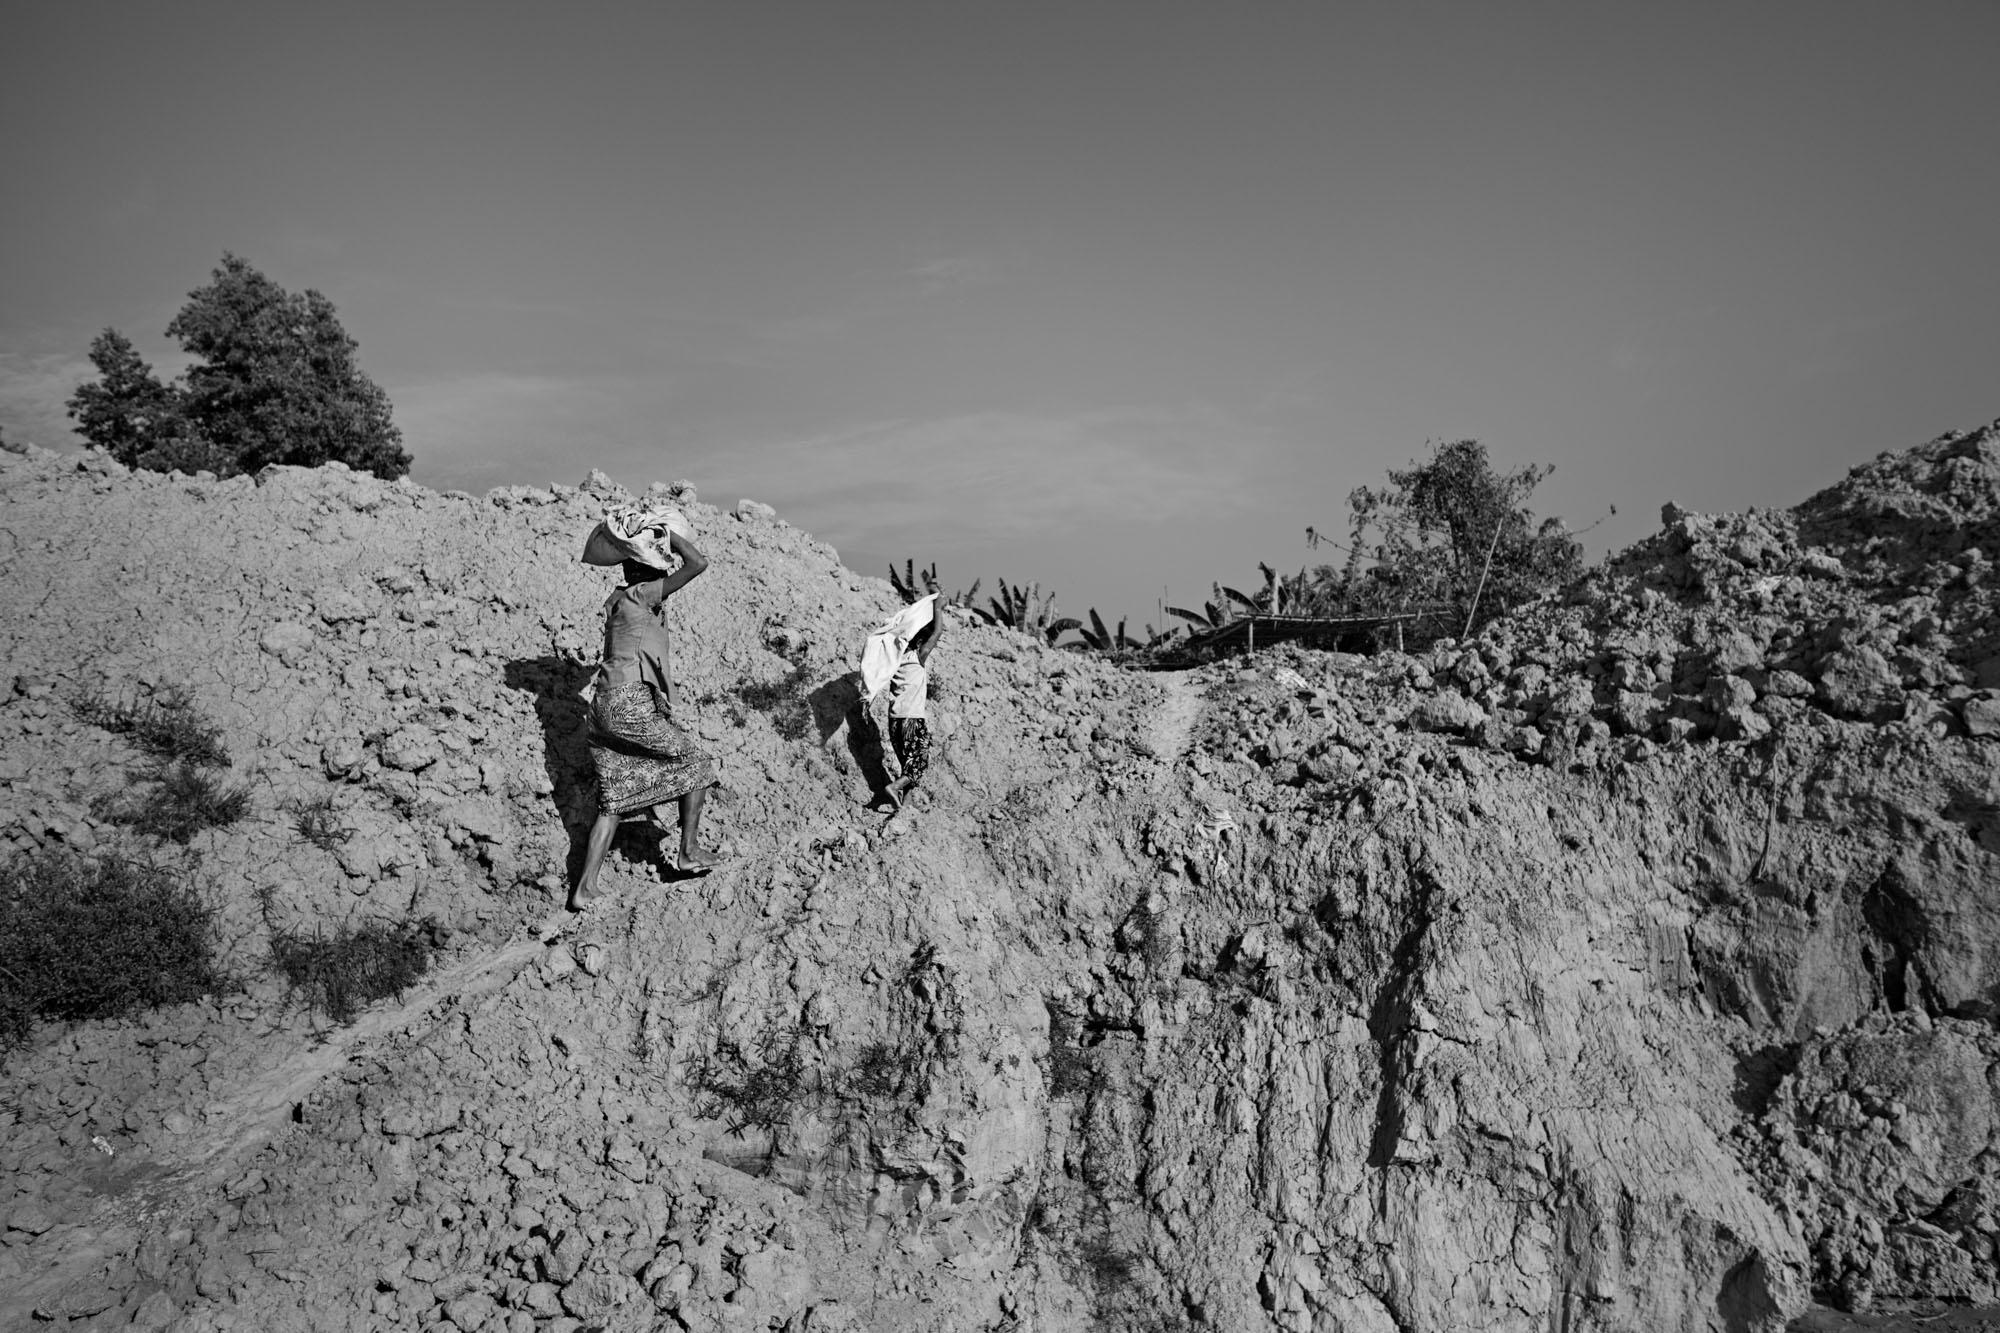 Than Nwe and her daughter, Saung Ning Wai, carry sacks of clay up the embankment from a machine-dug pit to the small shack where their family fashions bricks.